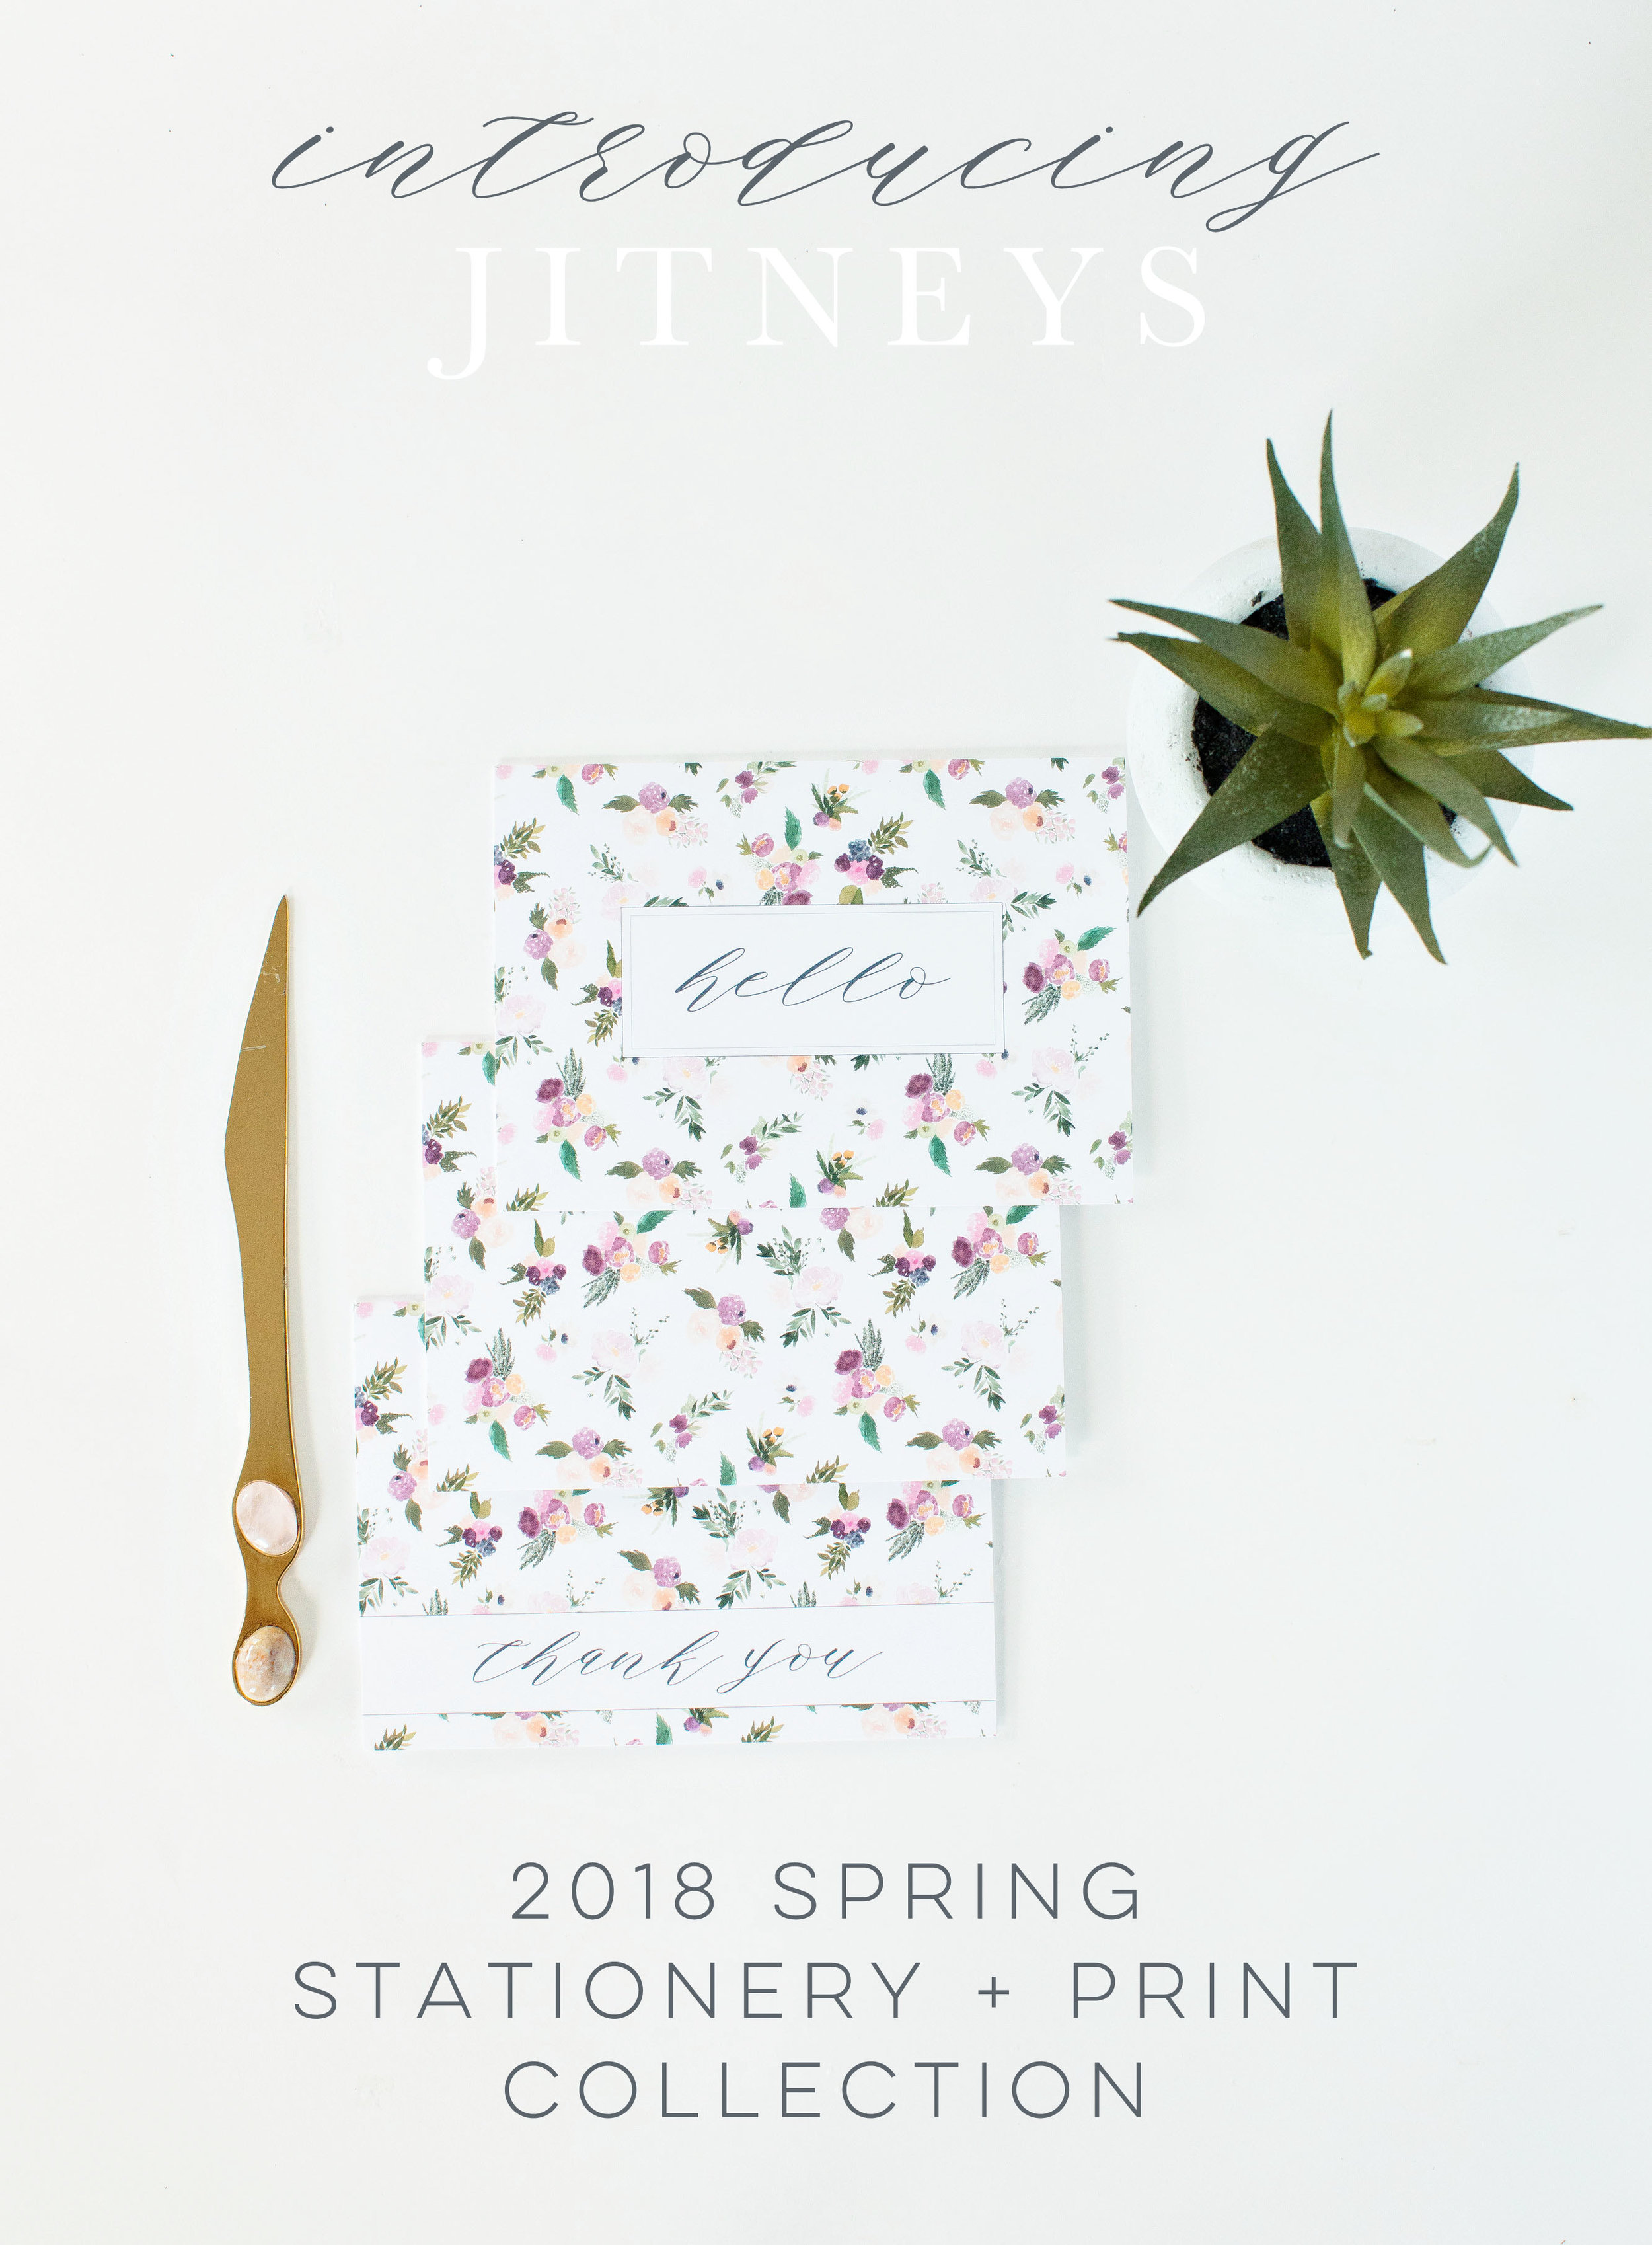 2018 Spring Stationery and Print Collection